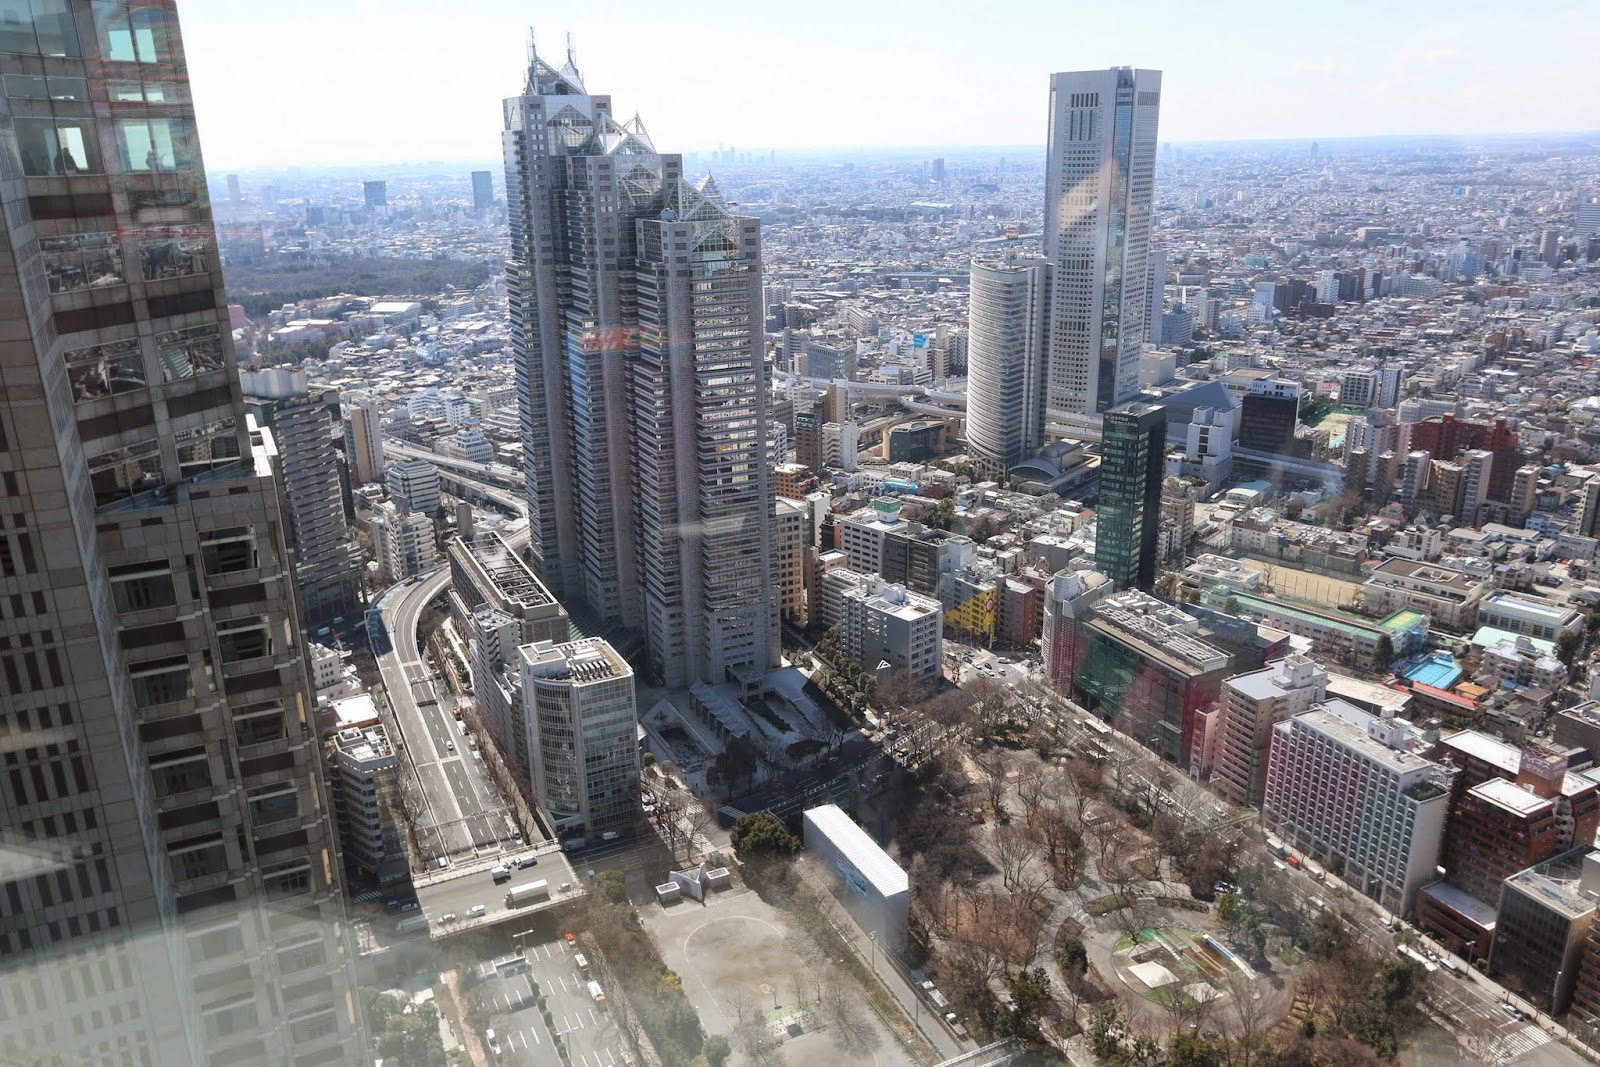 Shinjuku Park Tower (235m) & Tokyo Opera City Tower (234m), the skyscrapers in Shinjuku Business District at observation deck in Tokyo